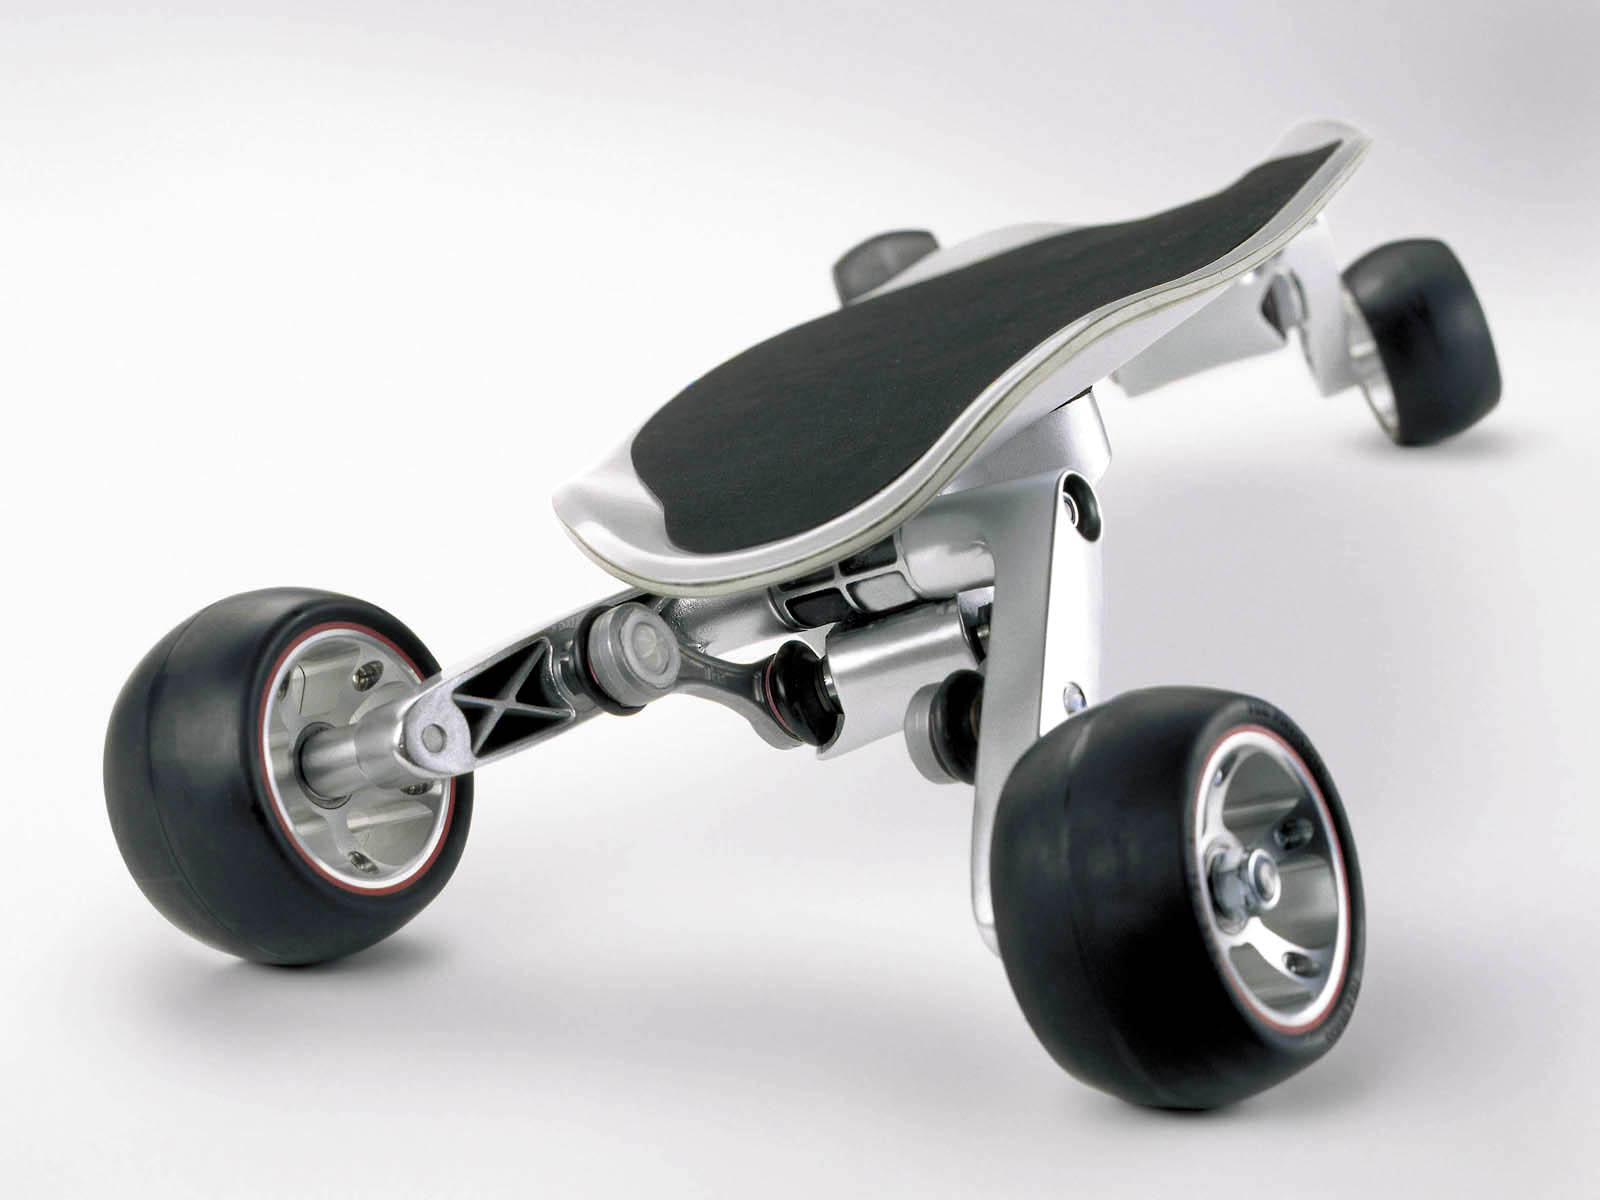 Skate Bmw Street Carver Longboard HD Wallpapers Download free images and photos [musssic.tk]